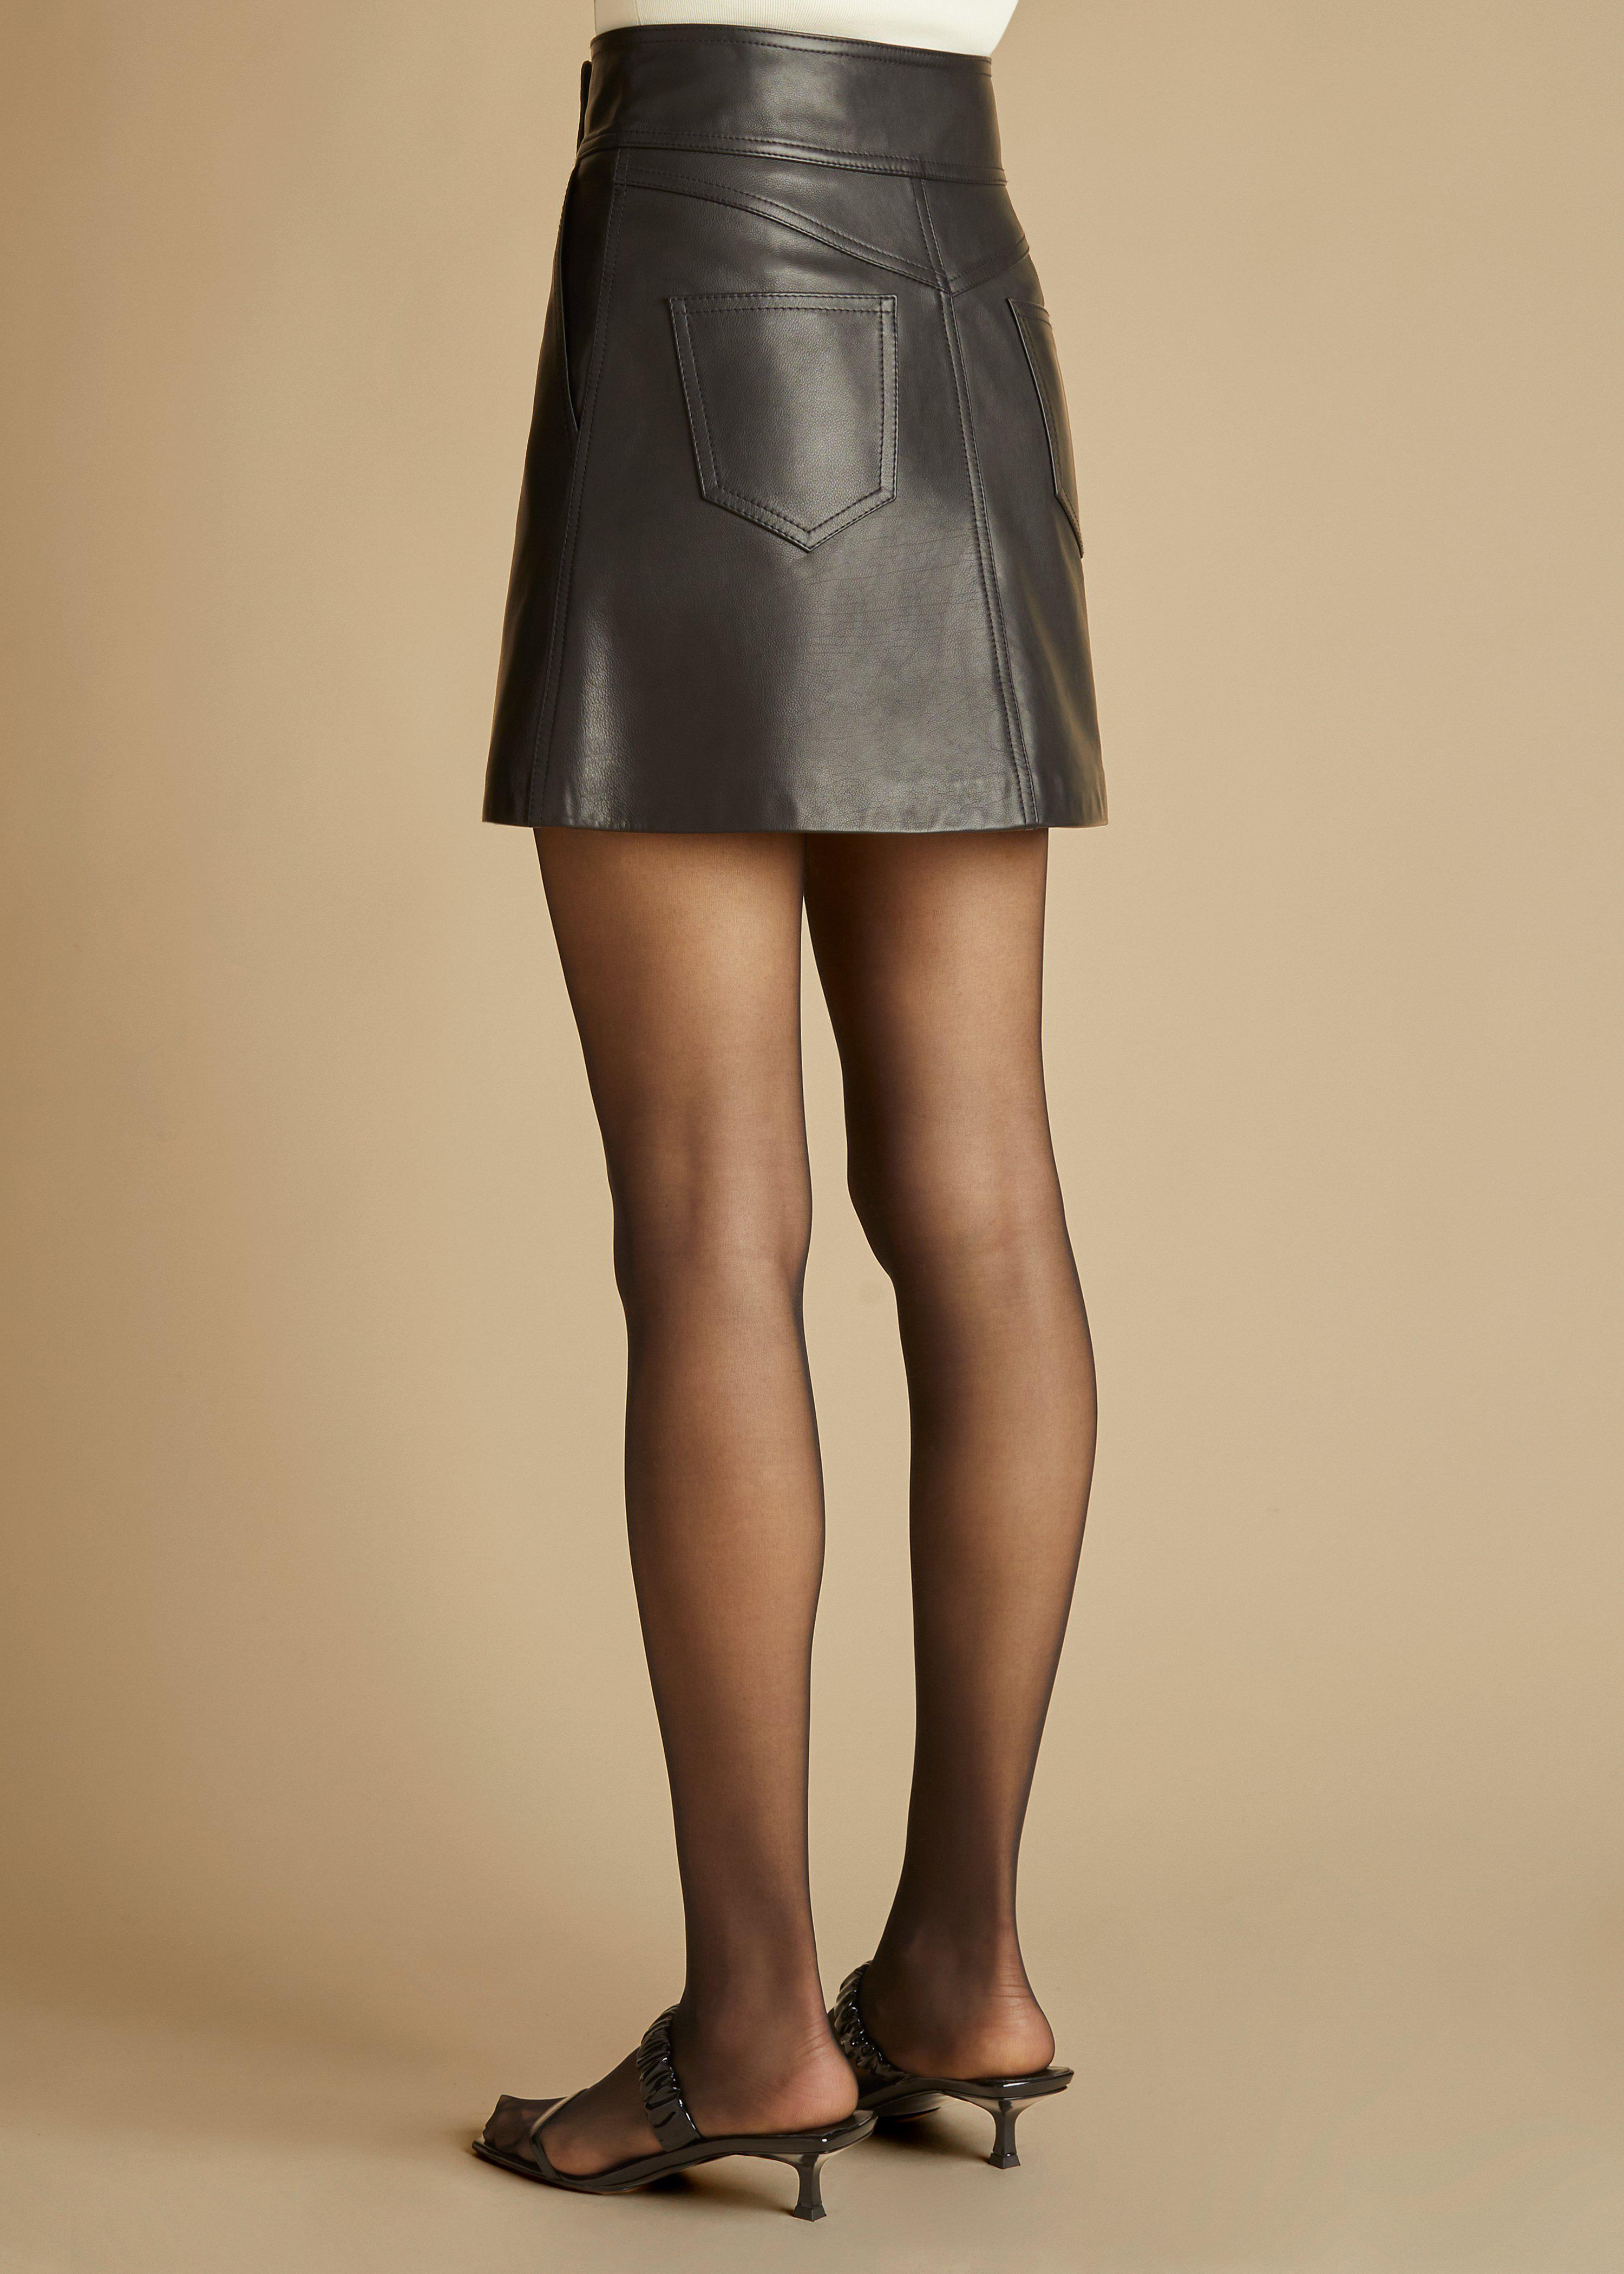 The Giulia Skirt in Black Leather 2